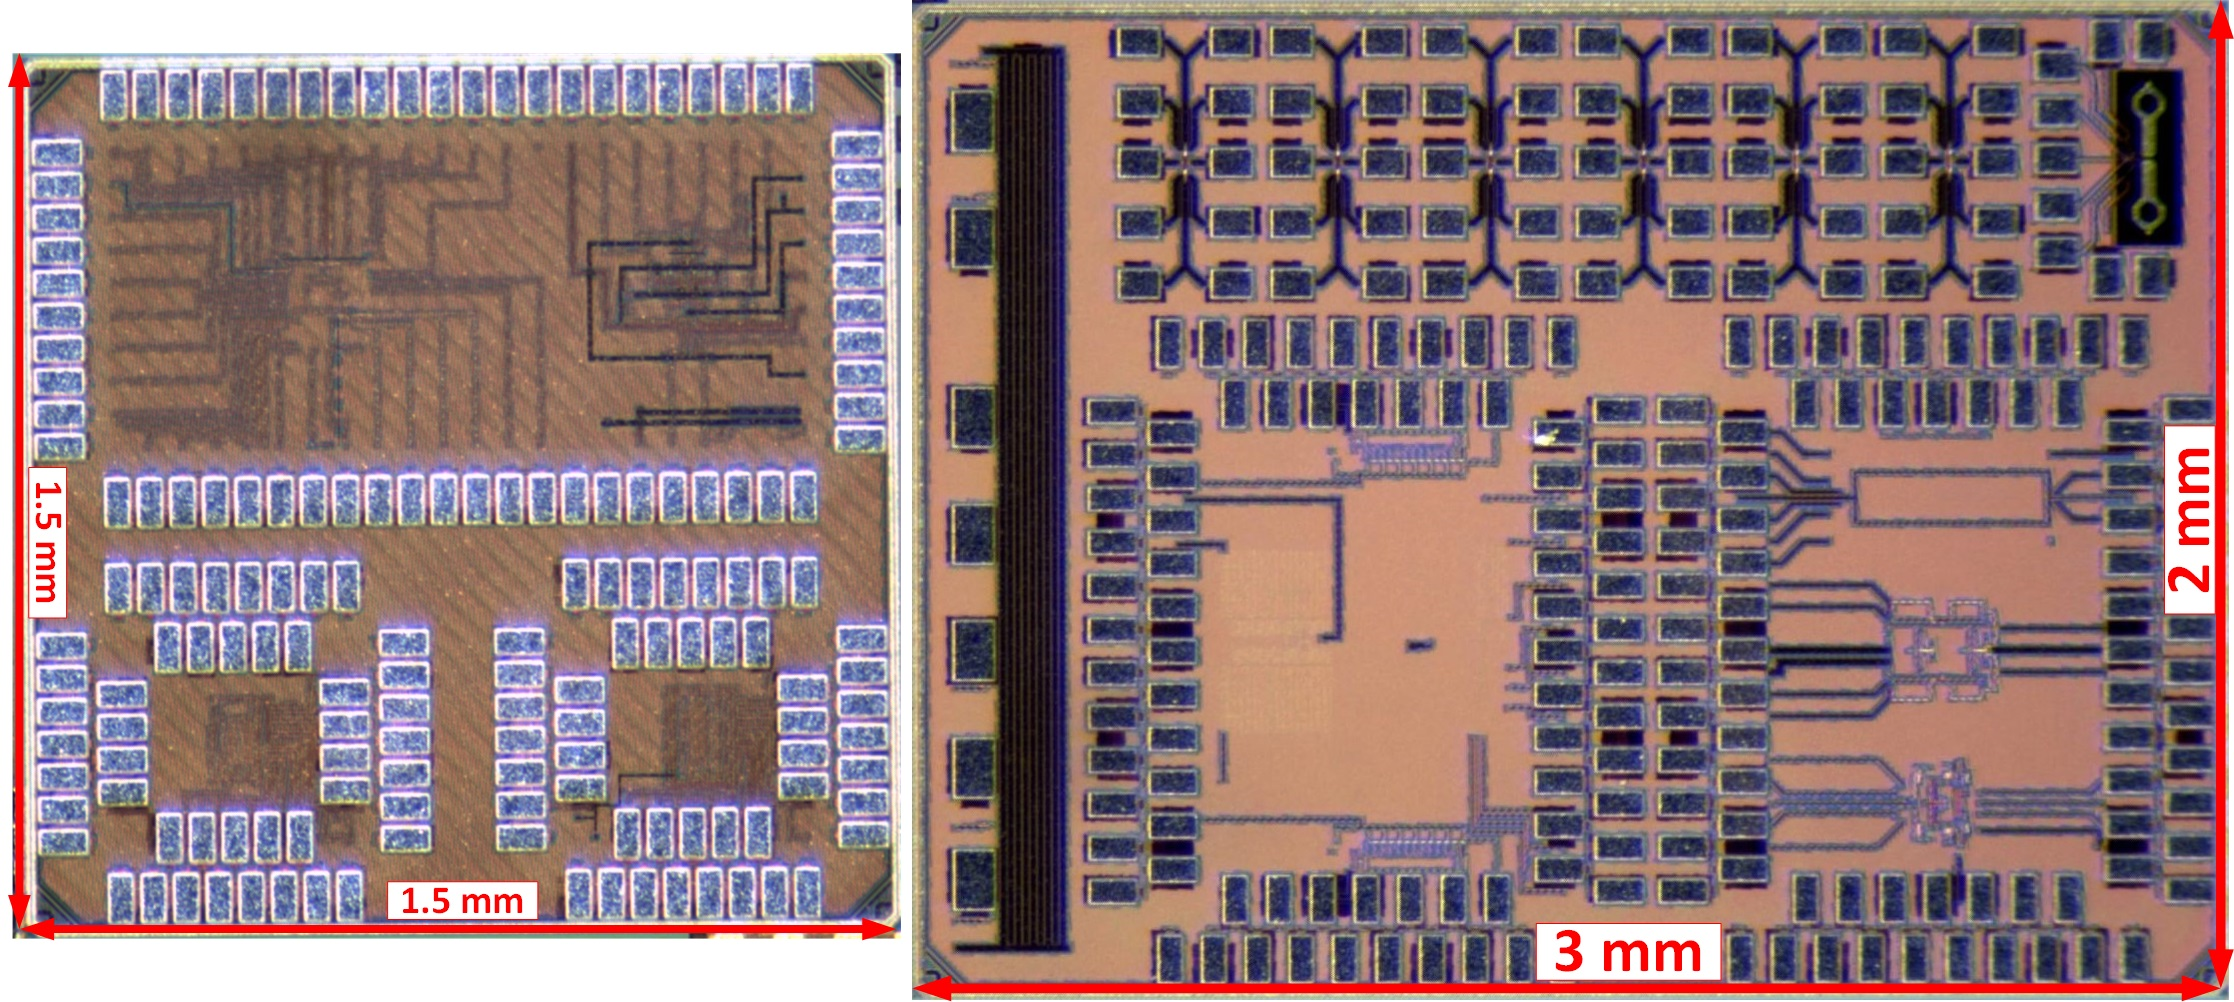 Dispositivi integrati CMOS a 28nm